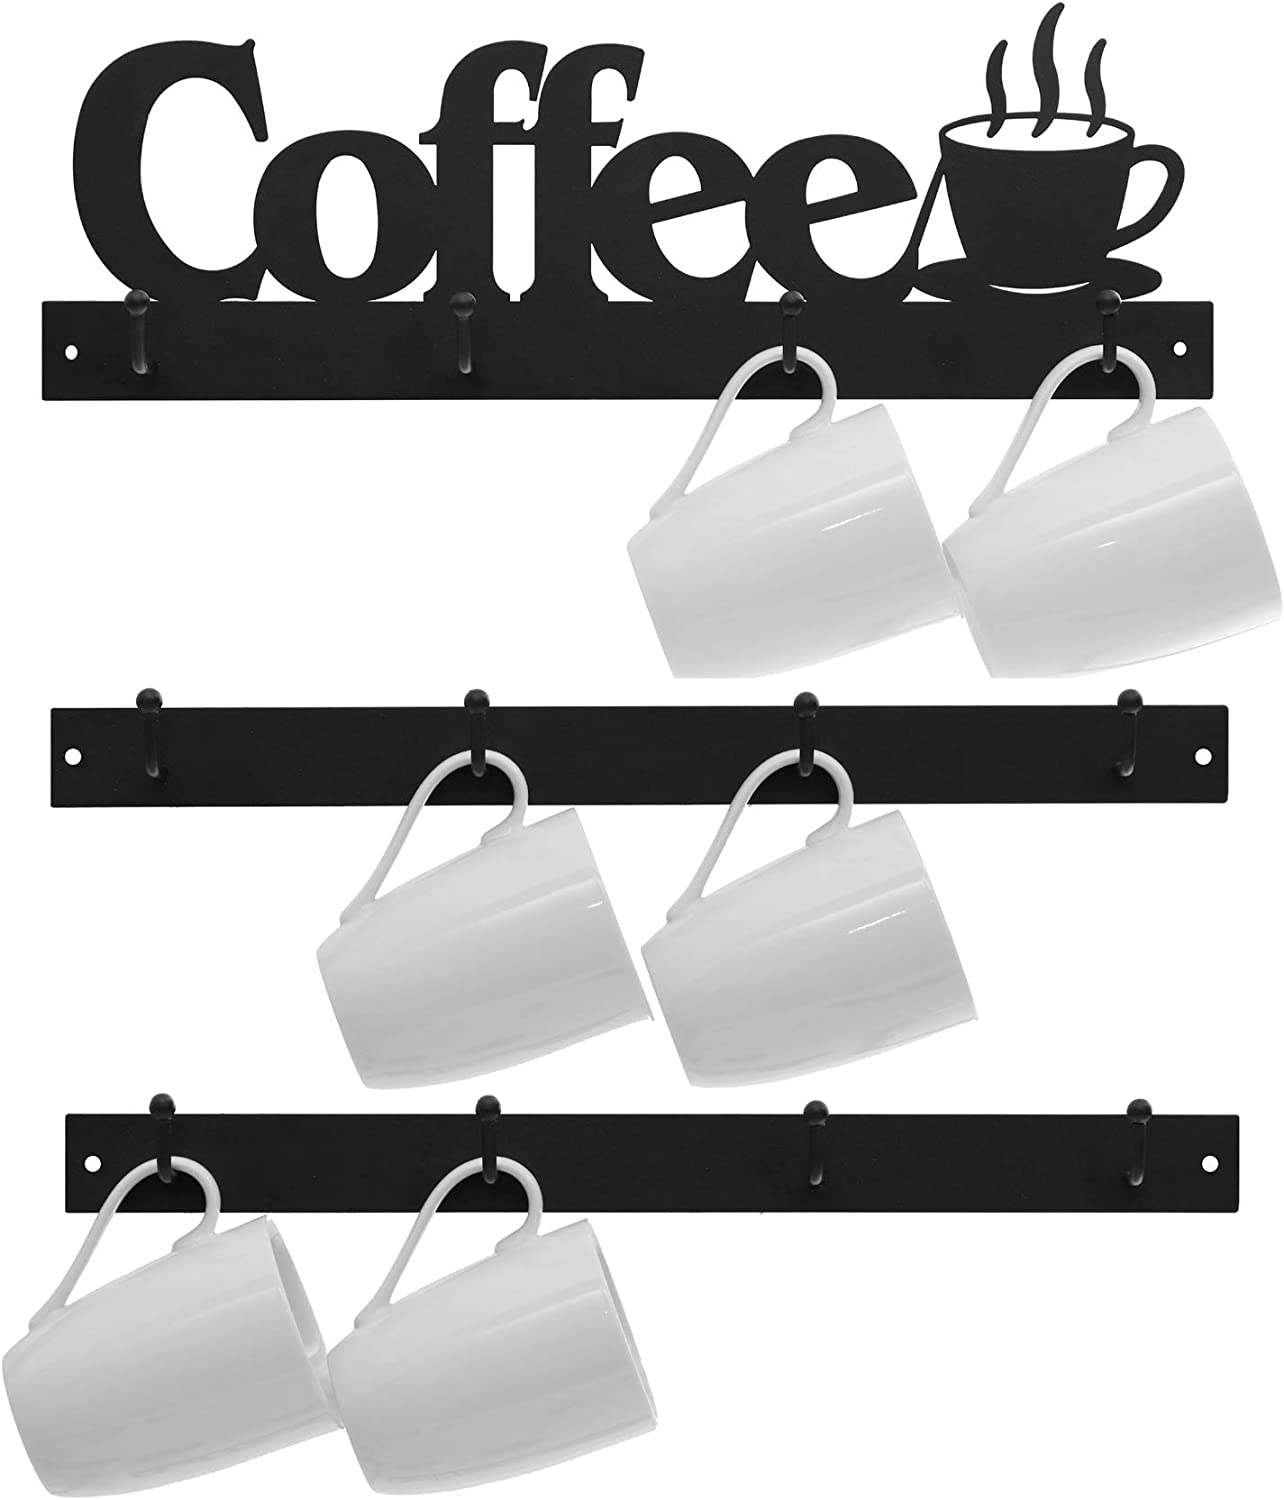 Lixgifts Coffee Mug Rack Wall Mounted with 12 Hooks, Coffee Cup Holder for Wall Organizer Display, Tea Cup Hanger with Black Metal Coffee Sign for Coffee Bar, Kitchen, Coffee Corner Station Decor